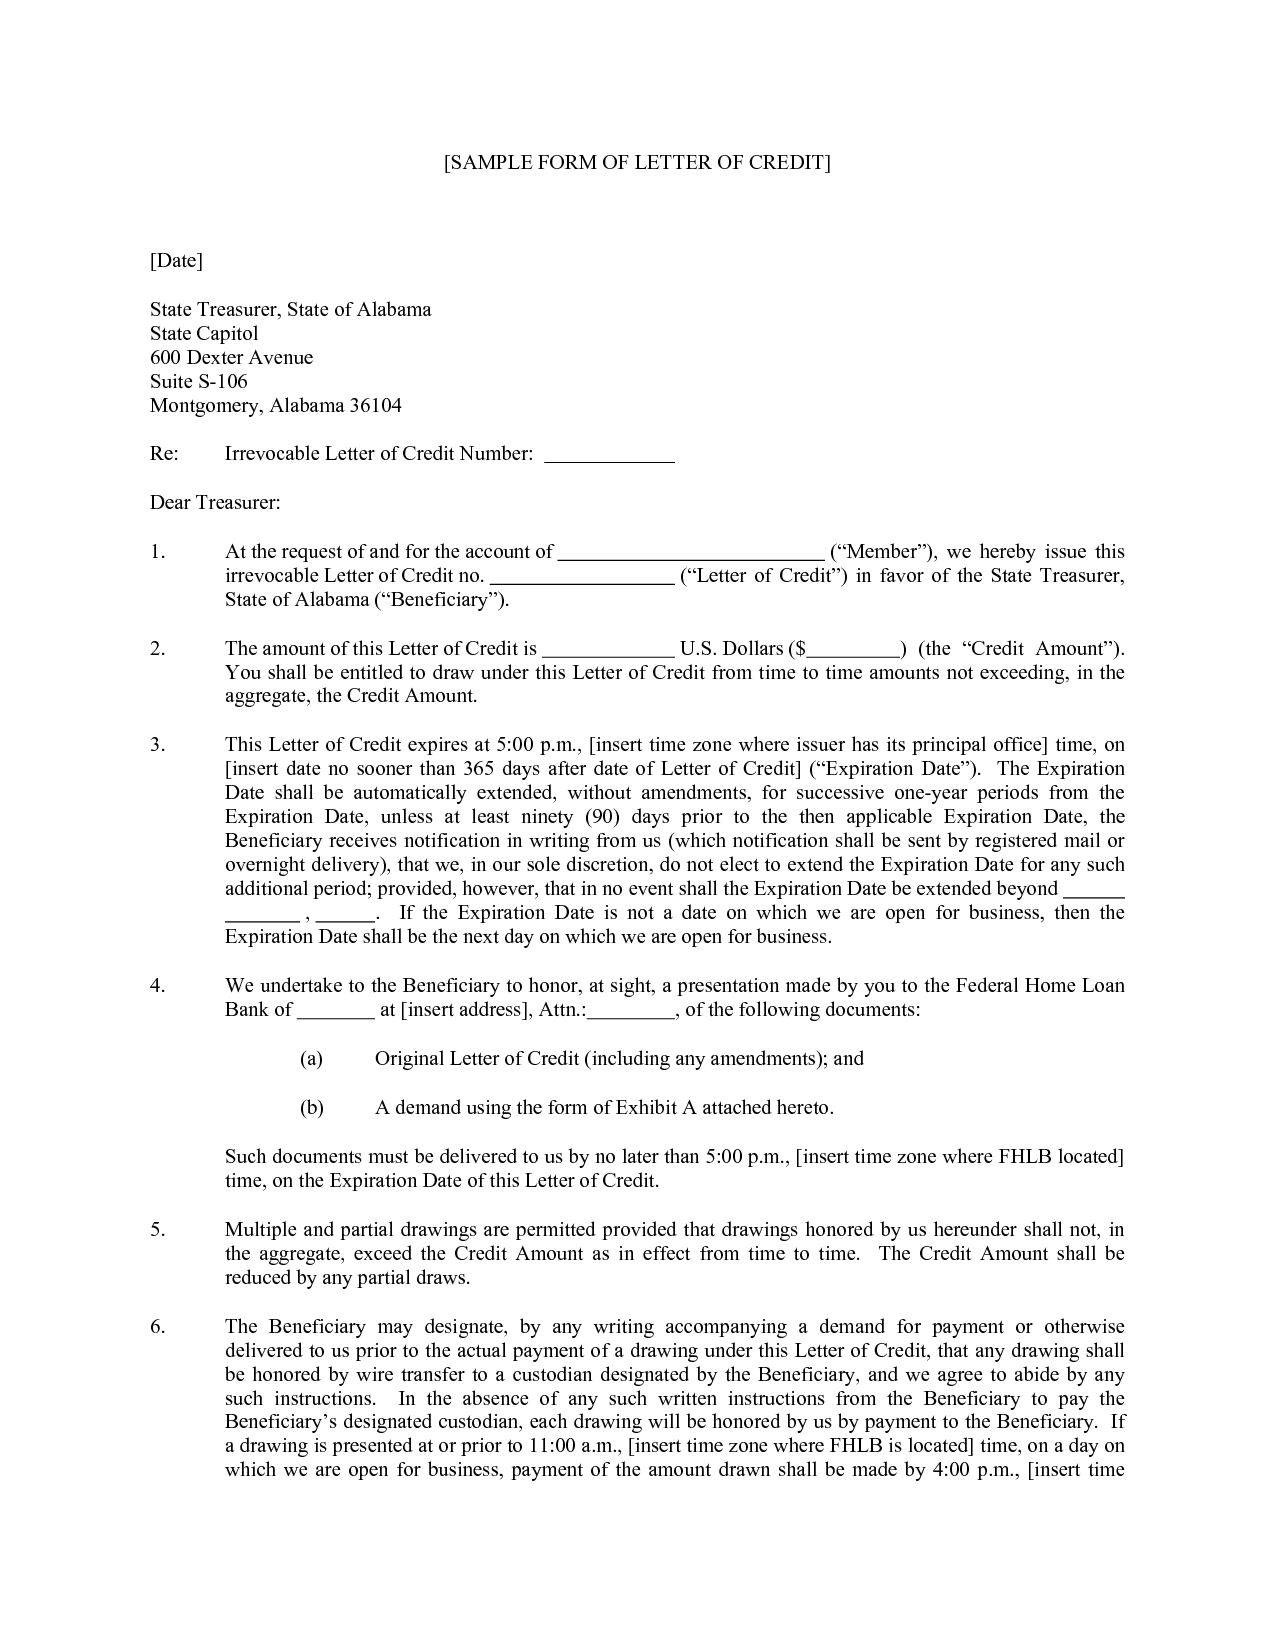 Irrevocable Letter Of Credit Template - Definition Of Credit Information Bureau Cib Process How to